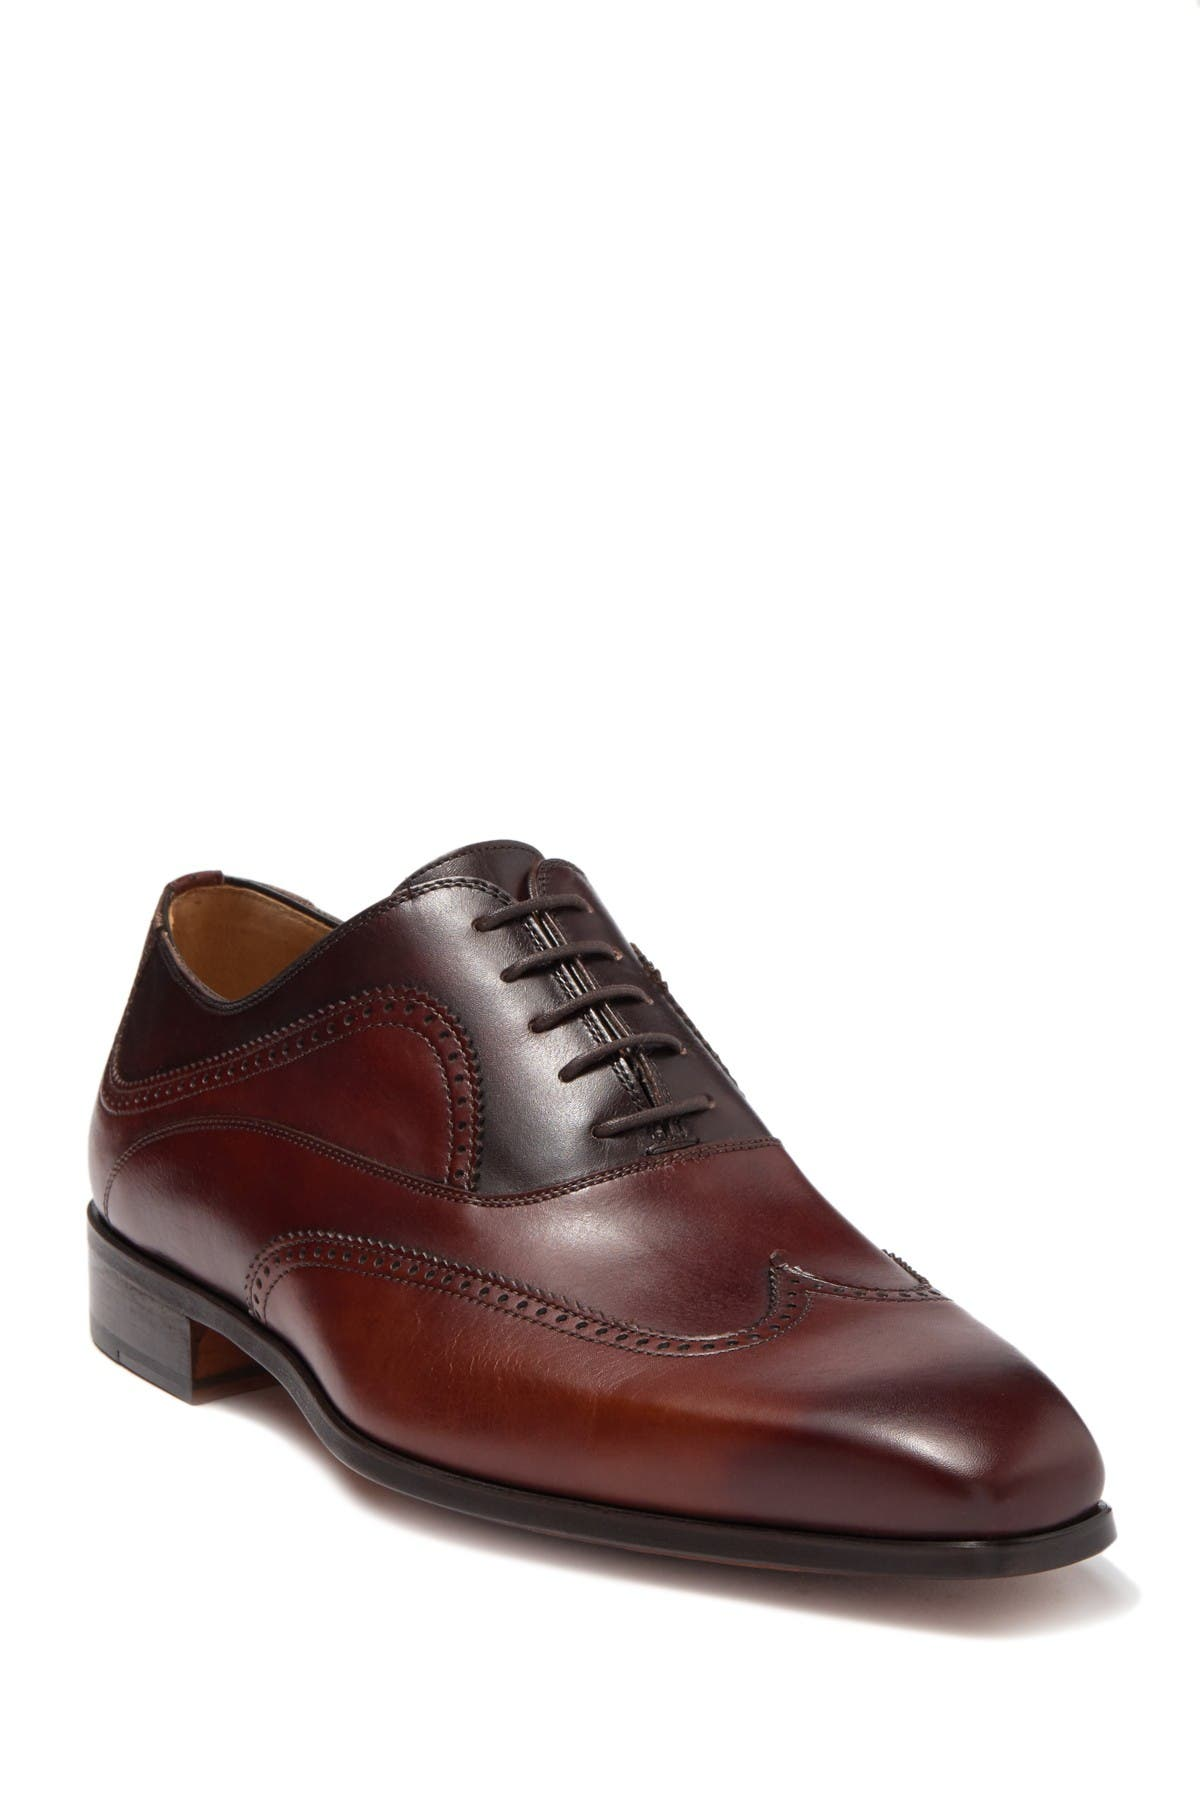 Image of Magnanni Ezell Leather Wingtip Oxford